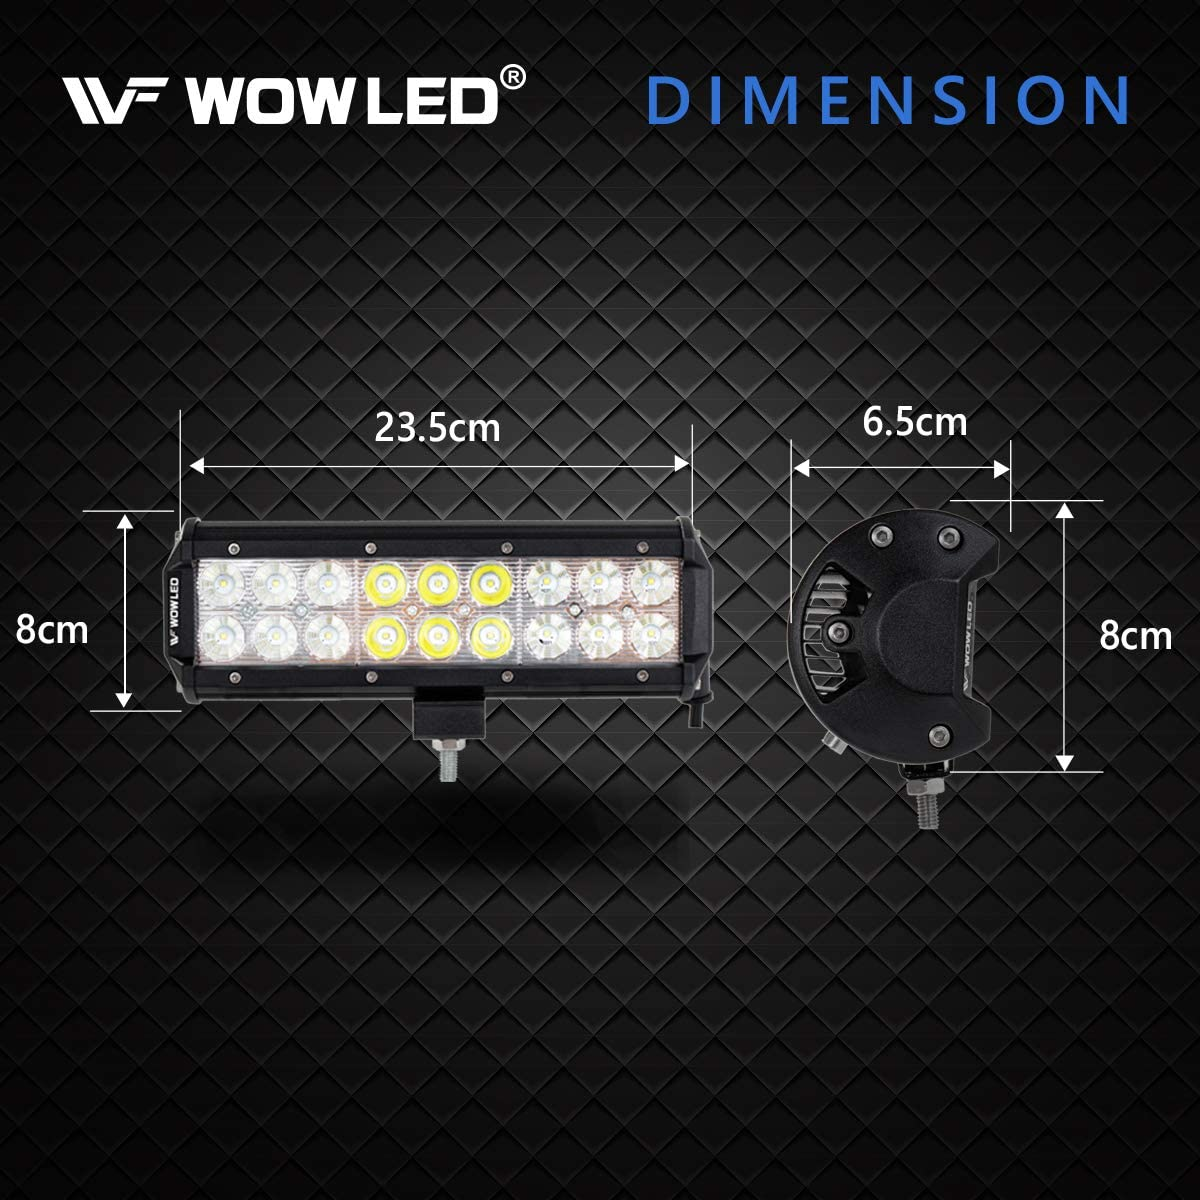 2x 5 Inch 36W 10800Lumens Two Rows Upgrade Off Road Lights Light Bar IP67 Offroad Driving Lamp Bar for Car Truck UTE 4x4 12V 24V WOWLED LED Work Light Bars